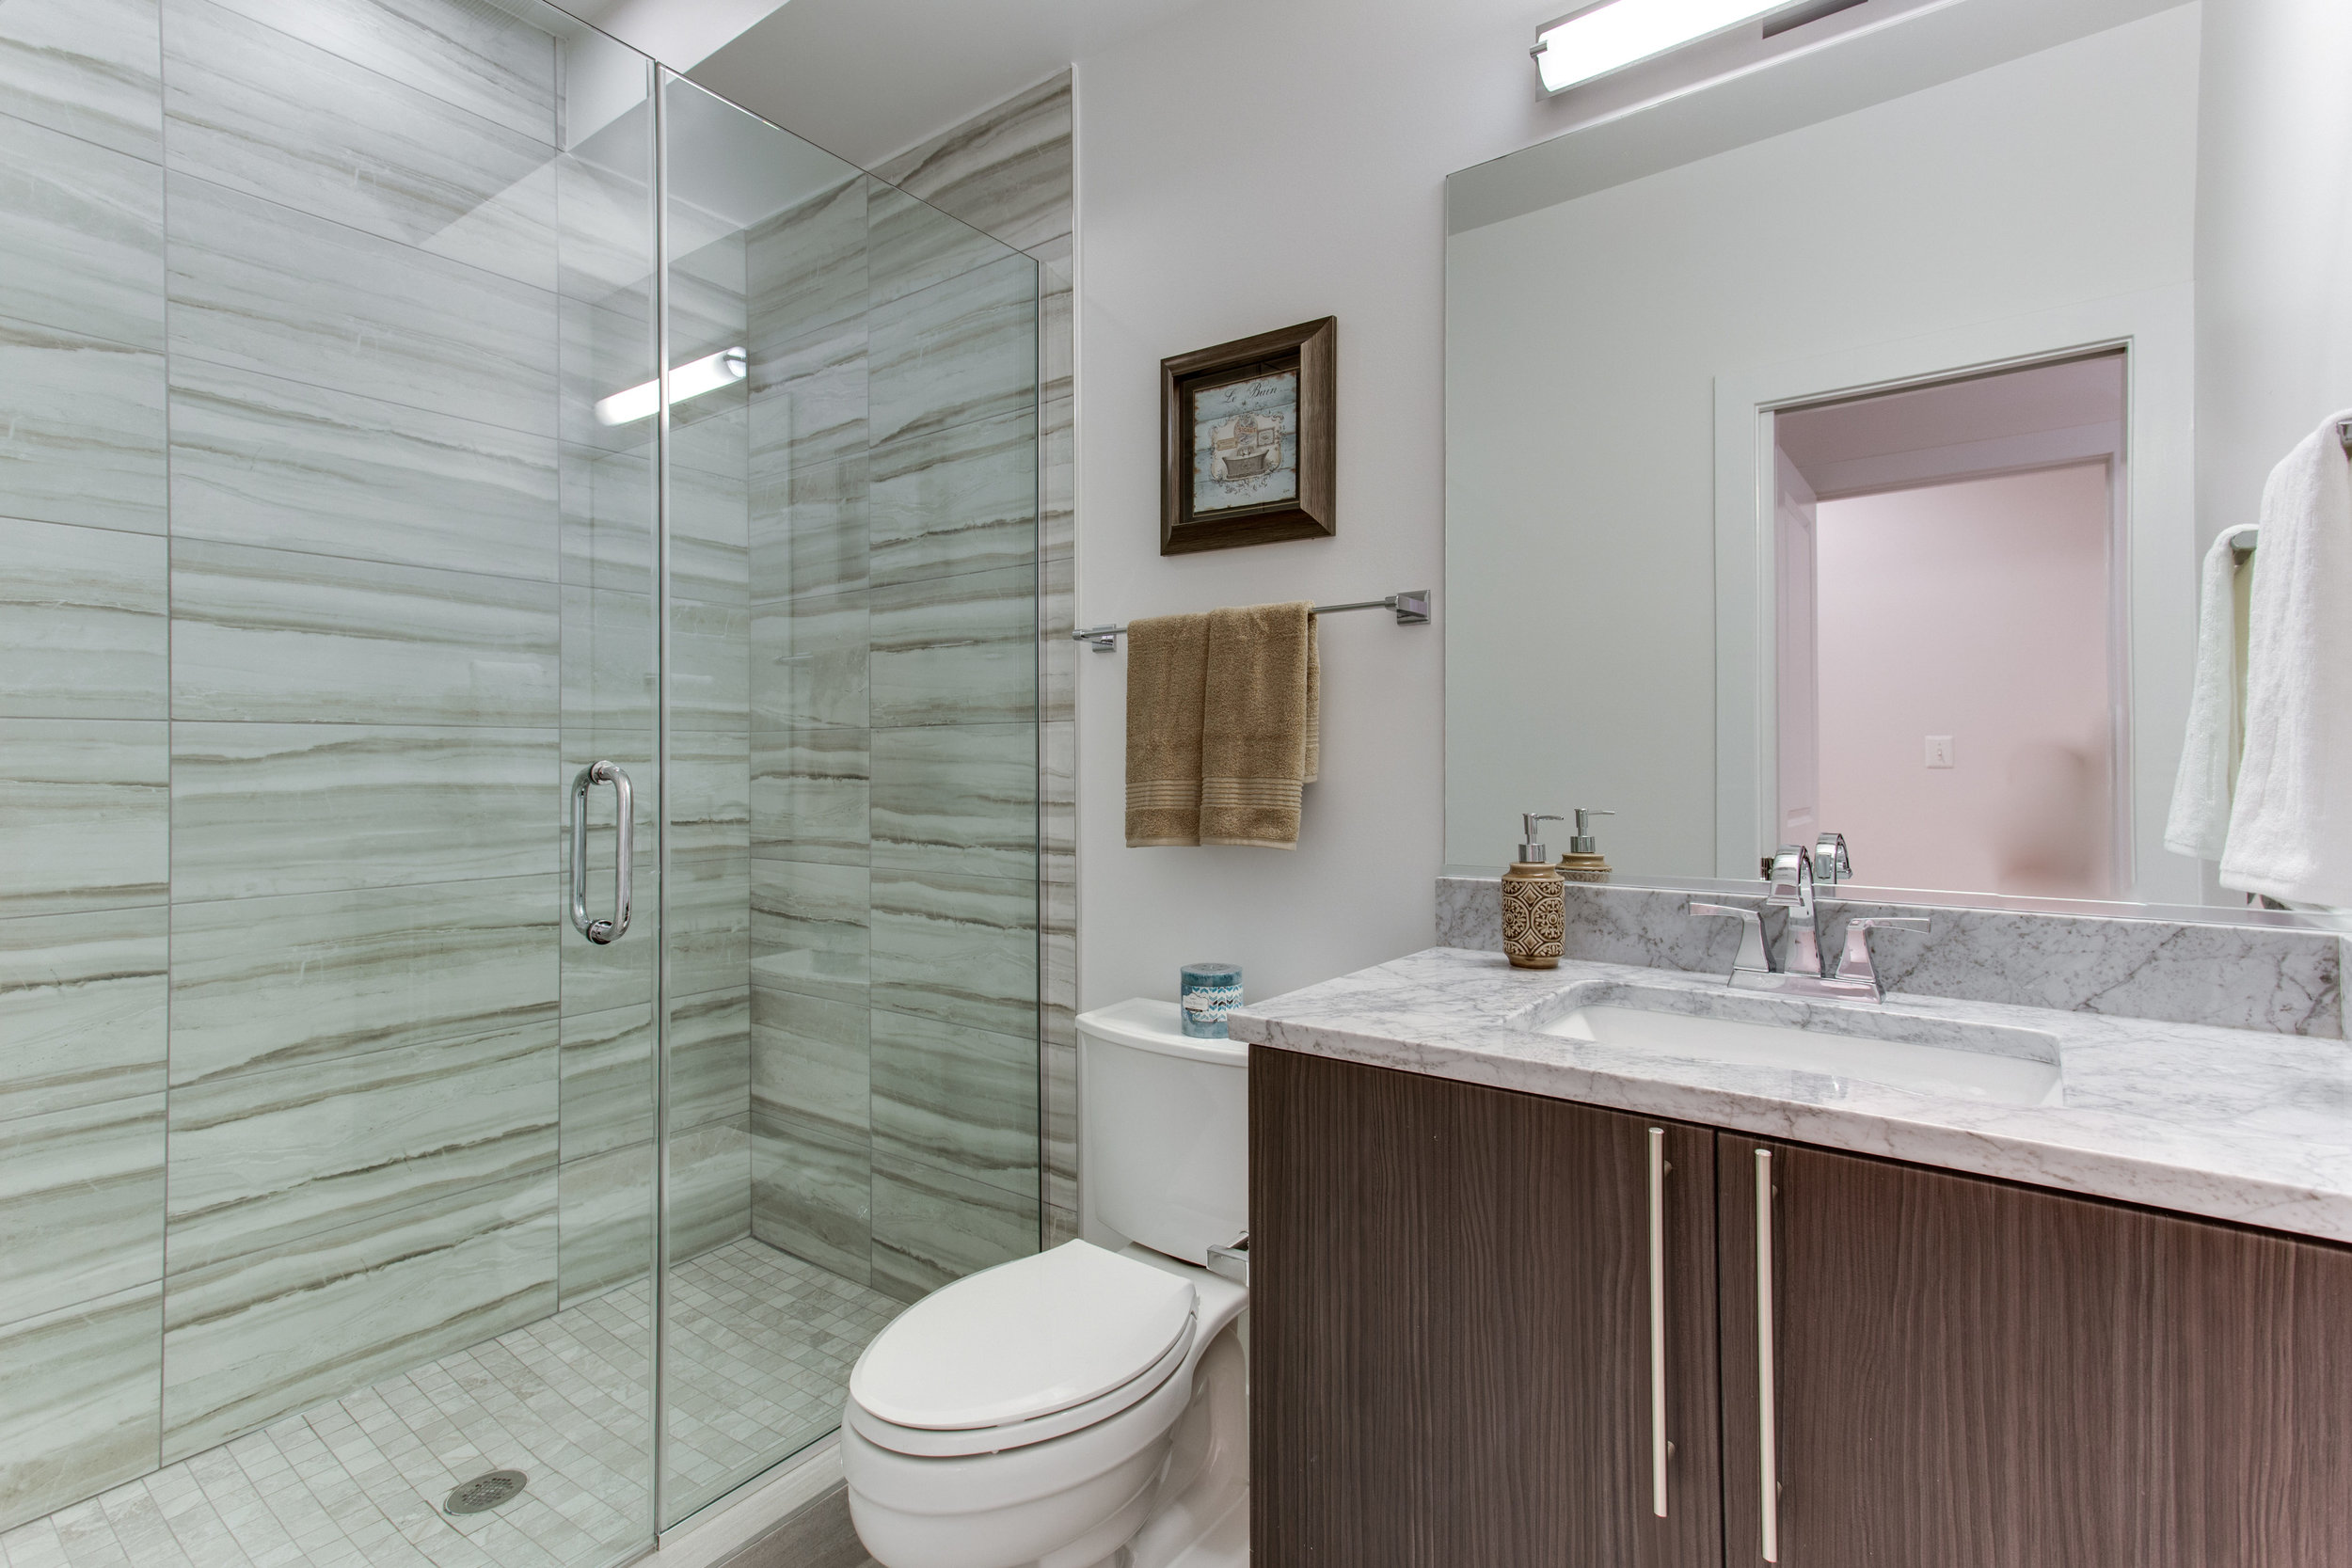 4511 Iowa Ave NW Unit 1-print-030-26-Bathroom-4200x2800-300dpi.jpg